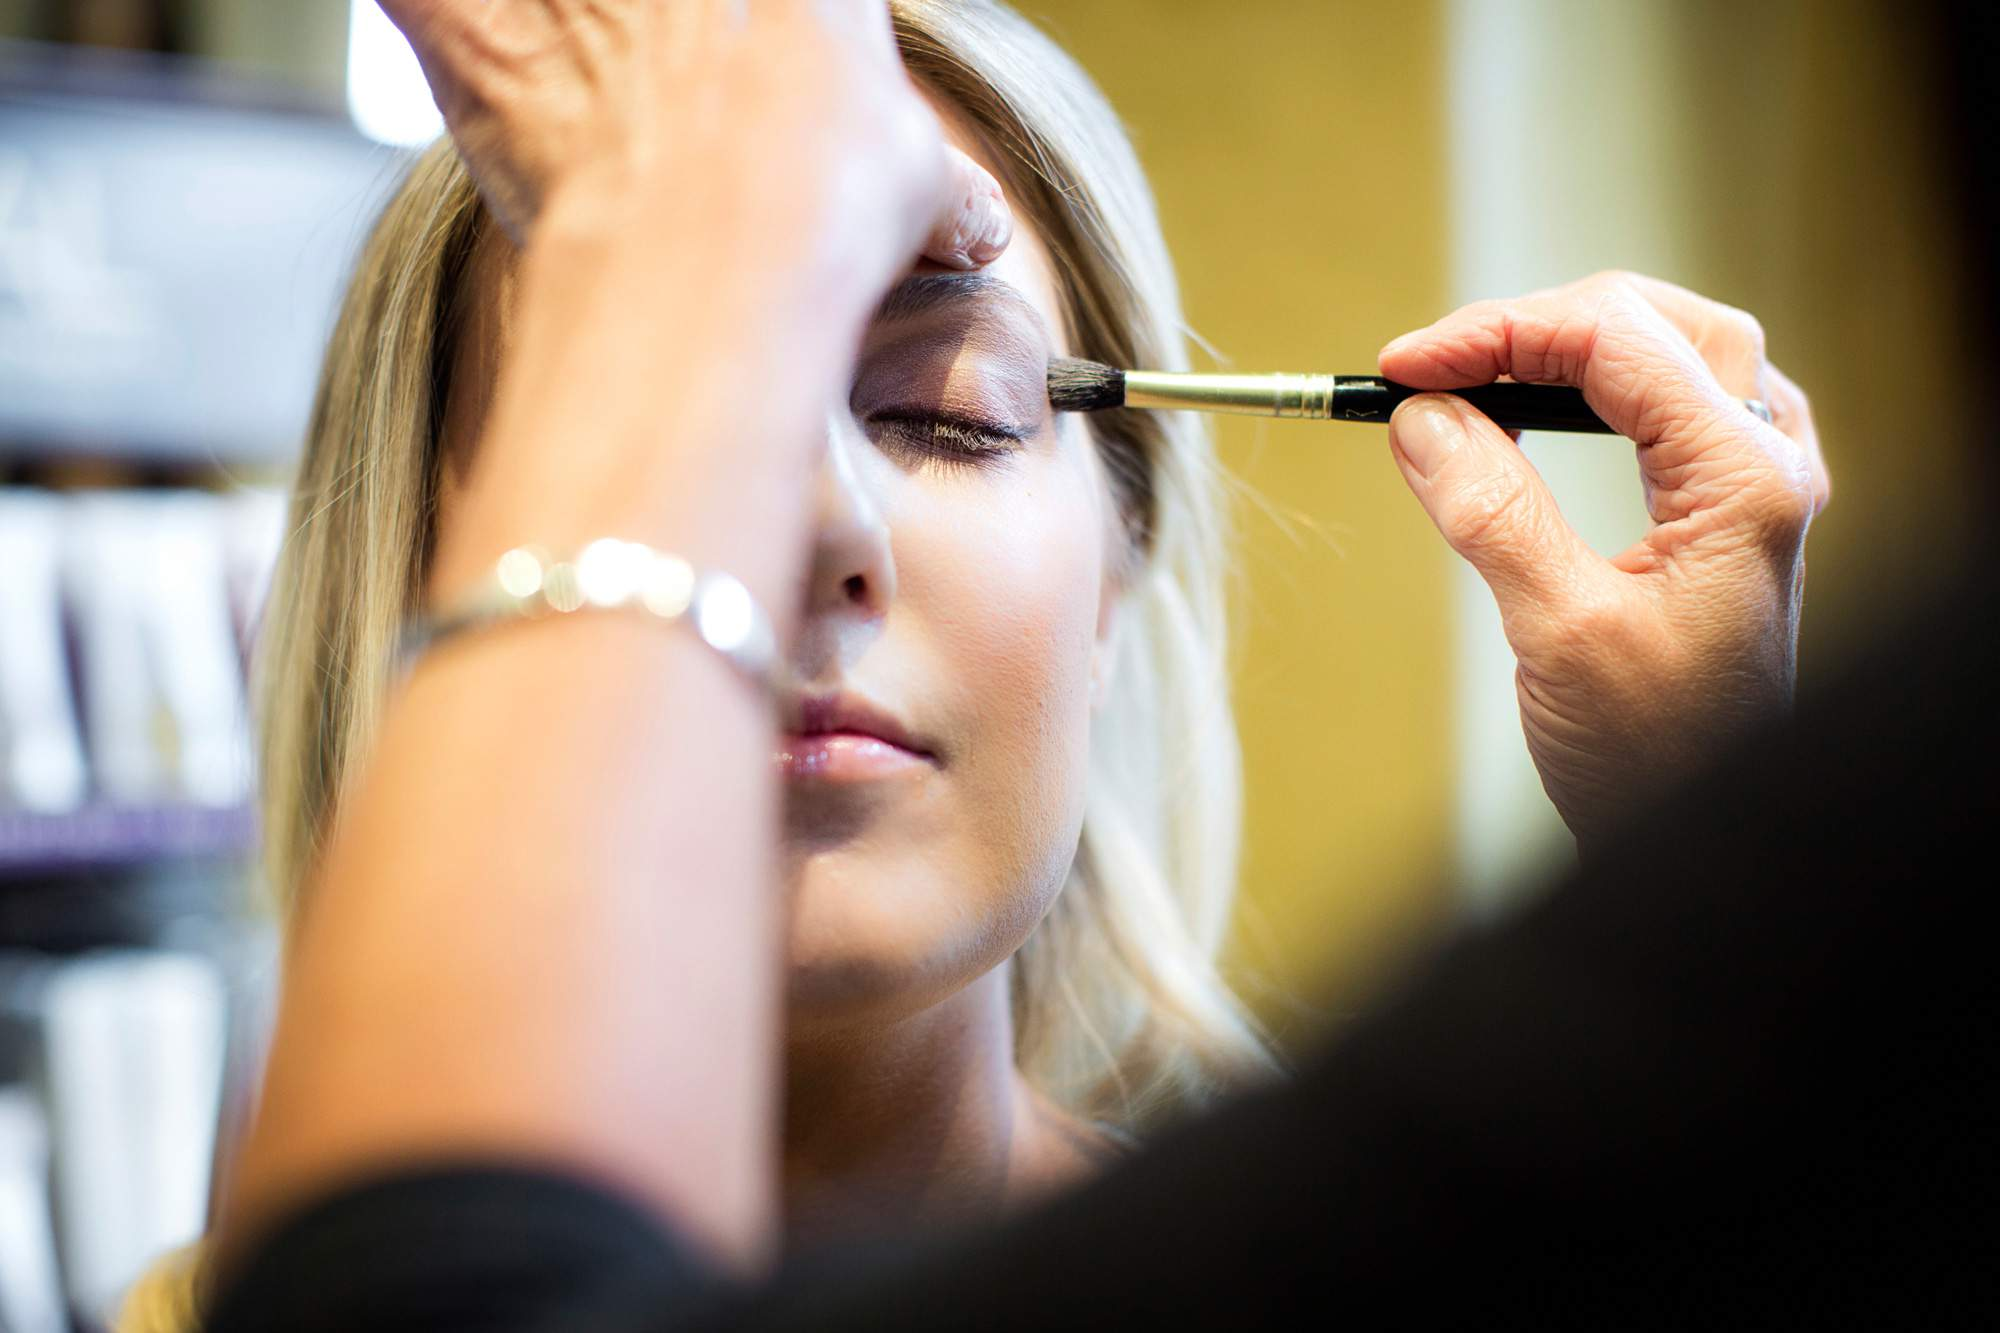 Eye Shadow being done - Makup - Salon Services - Rapunzels Salon and Spa - Canmore